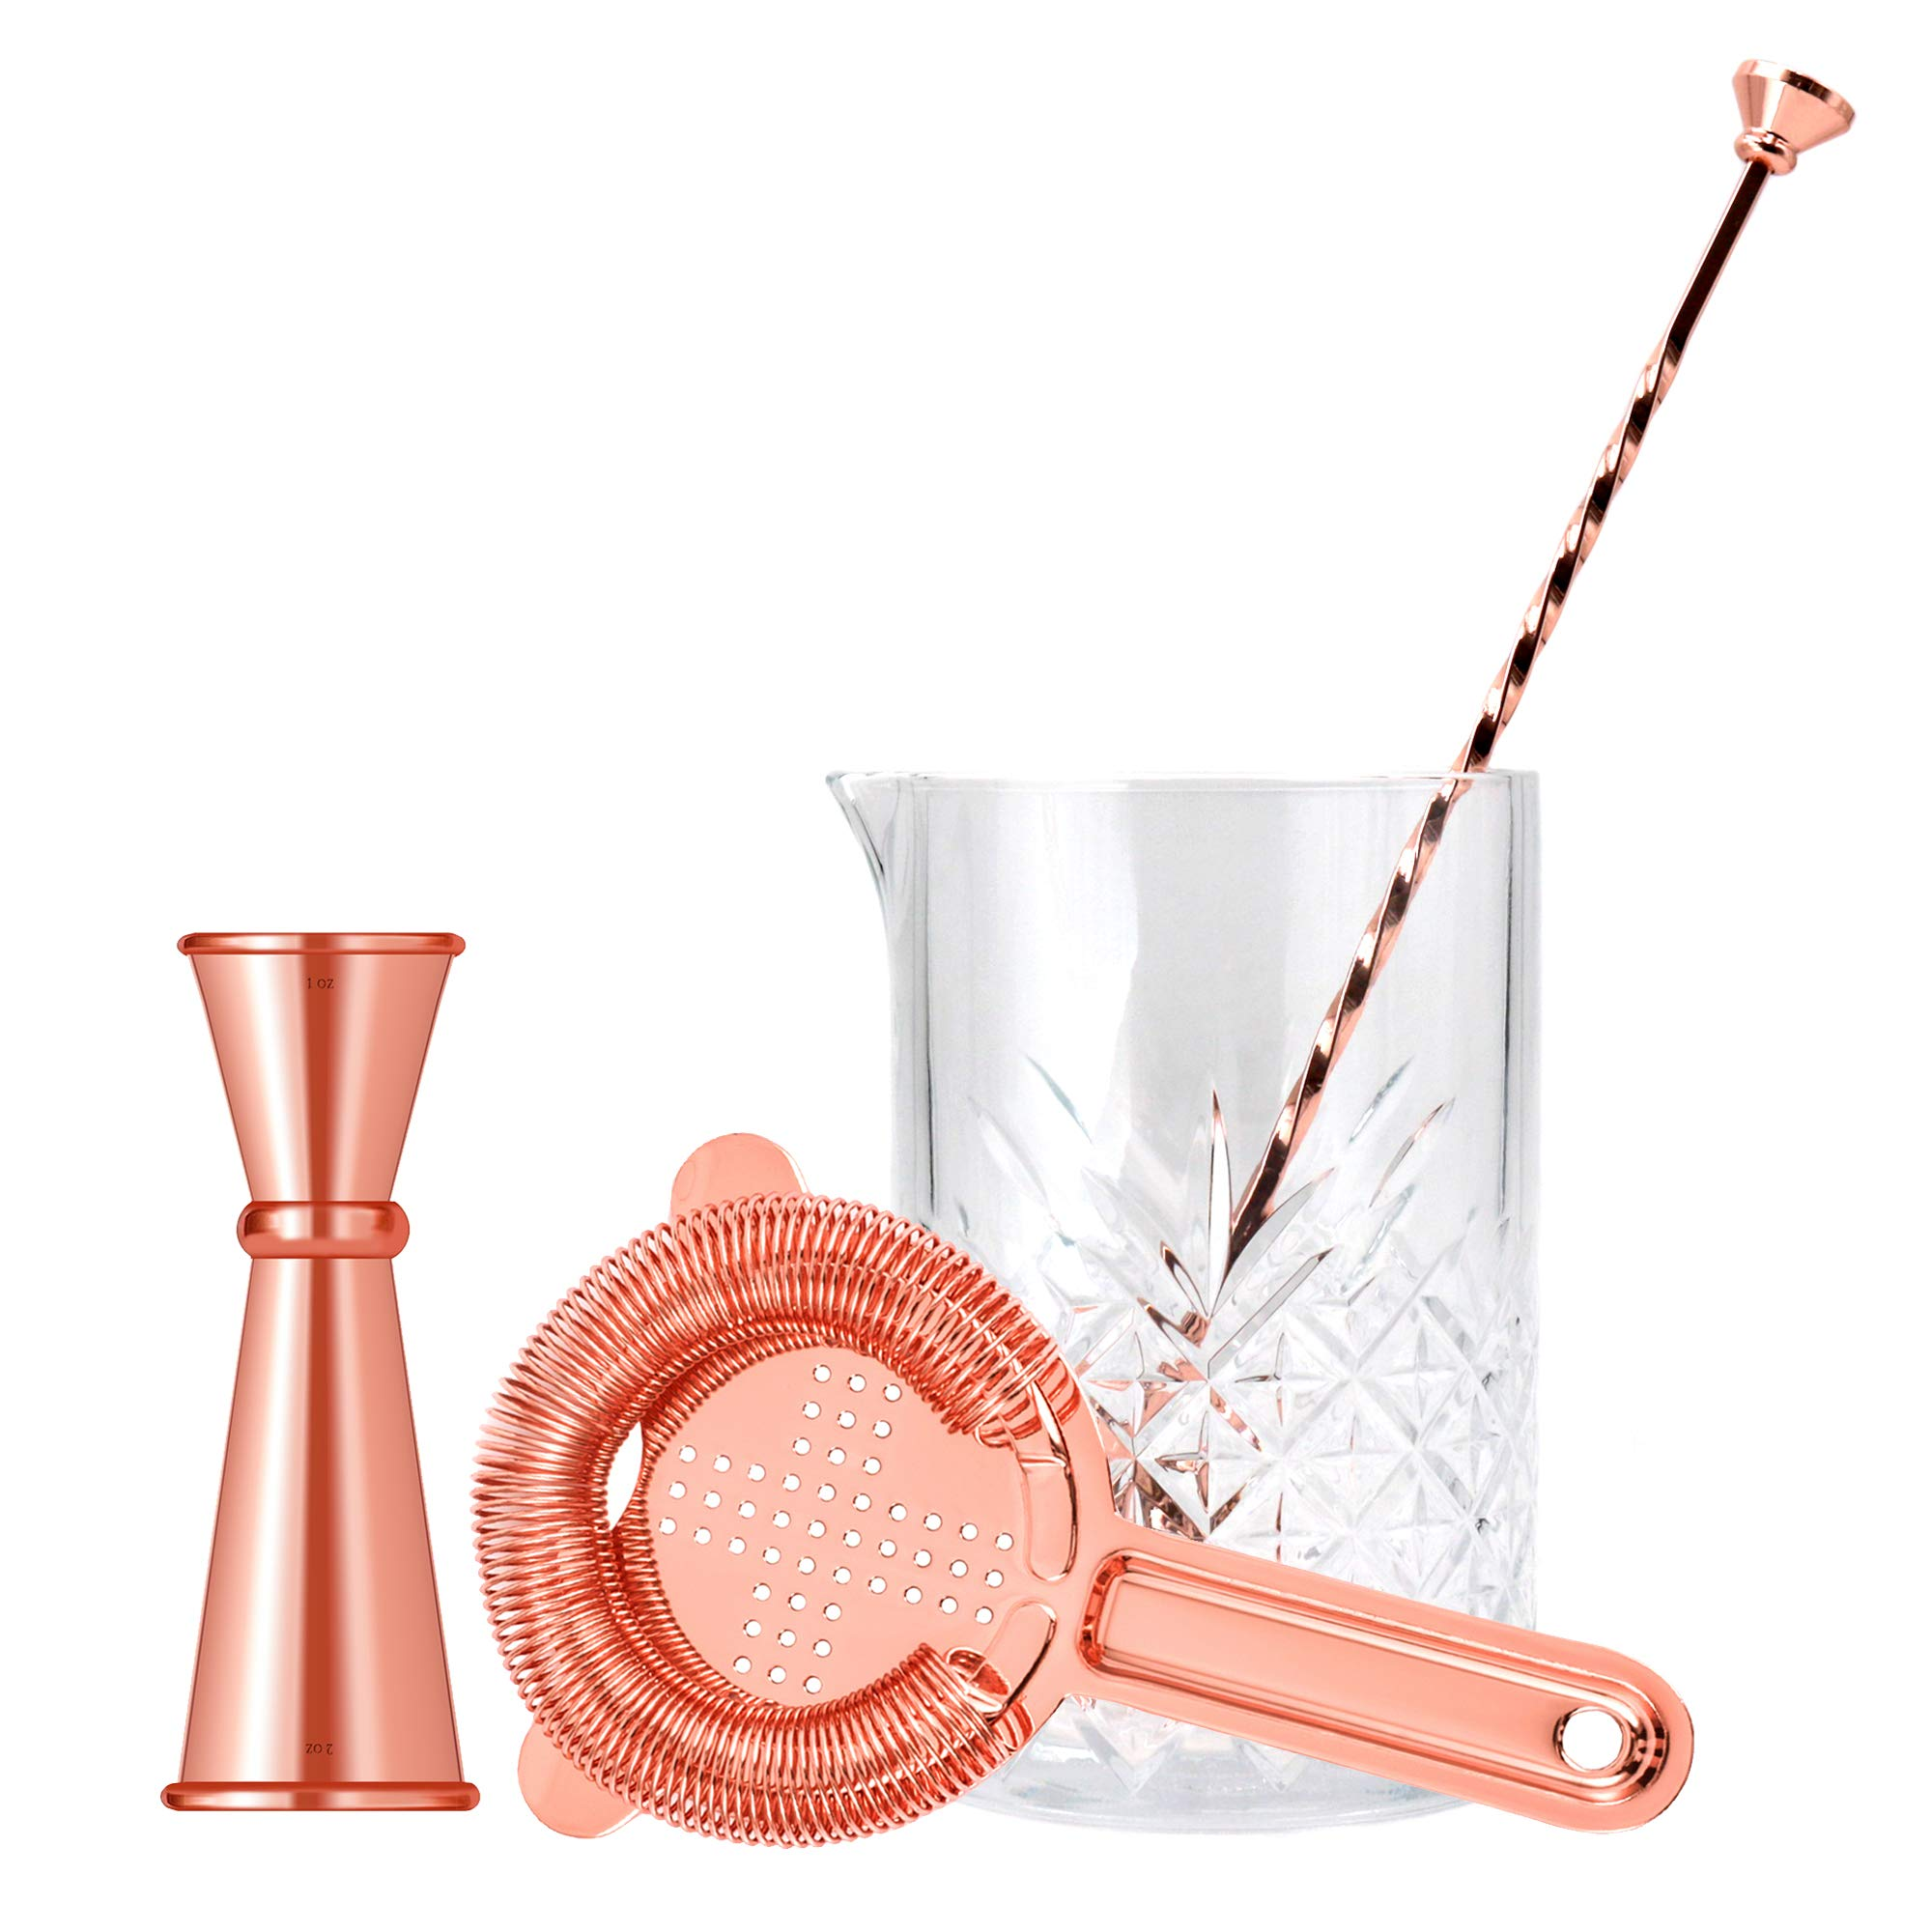 Cocktail Mixing Glass Bar Set By Homestia 4-Piece: 24.5oz Thick Mixing Glass, Bar Strainer, Double Jigger, Bar Spoon,Copper by Homestia